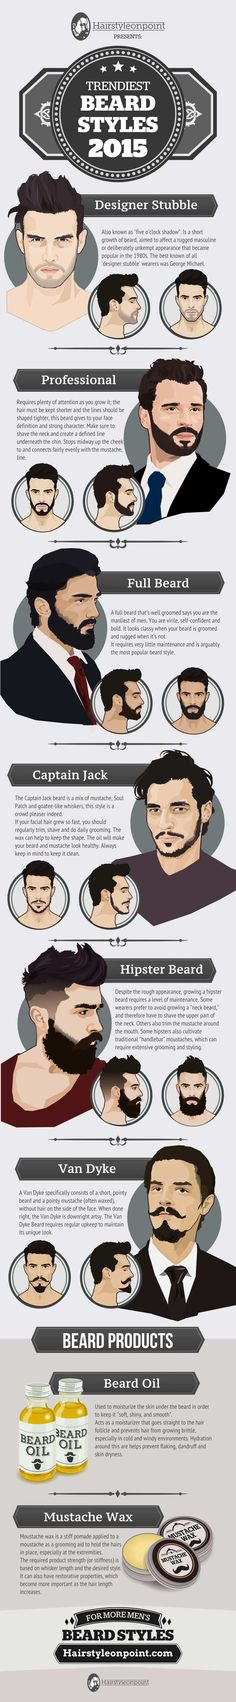 The Most Popular Beard Grooming Styles in 2018 - Neatly Trimmed is Top 6 Hottest Beard Styles Of 2015 That Will Take Your Beard Game To Another Level Beard Styles For Men, Hair And Beard Styles, Hot Beards, Beard Game, Hipster Beard, Mens Fashion Blog, Fashion Hair, Fashion Outfits, Beard Oil